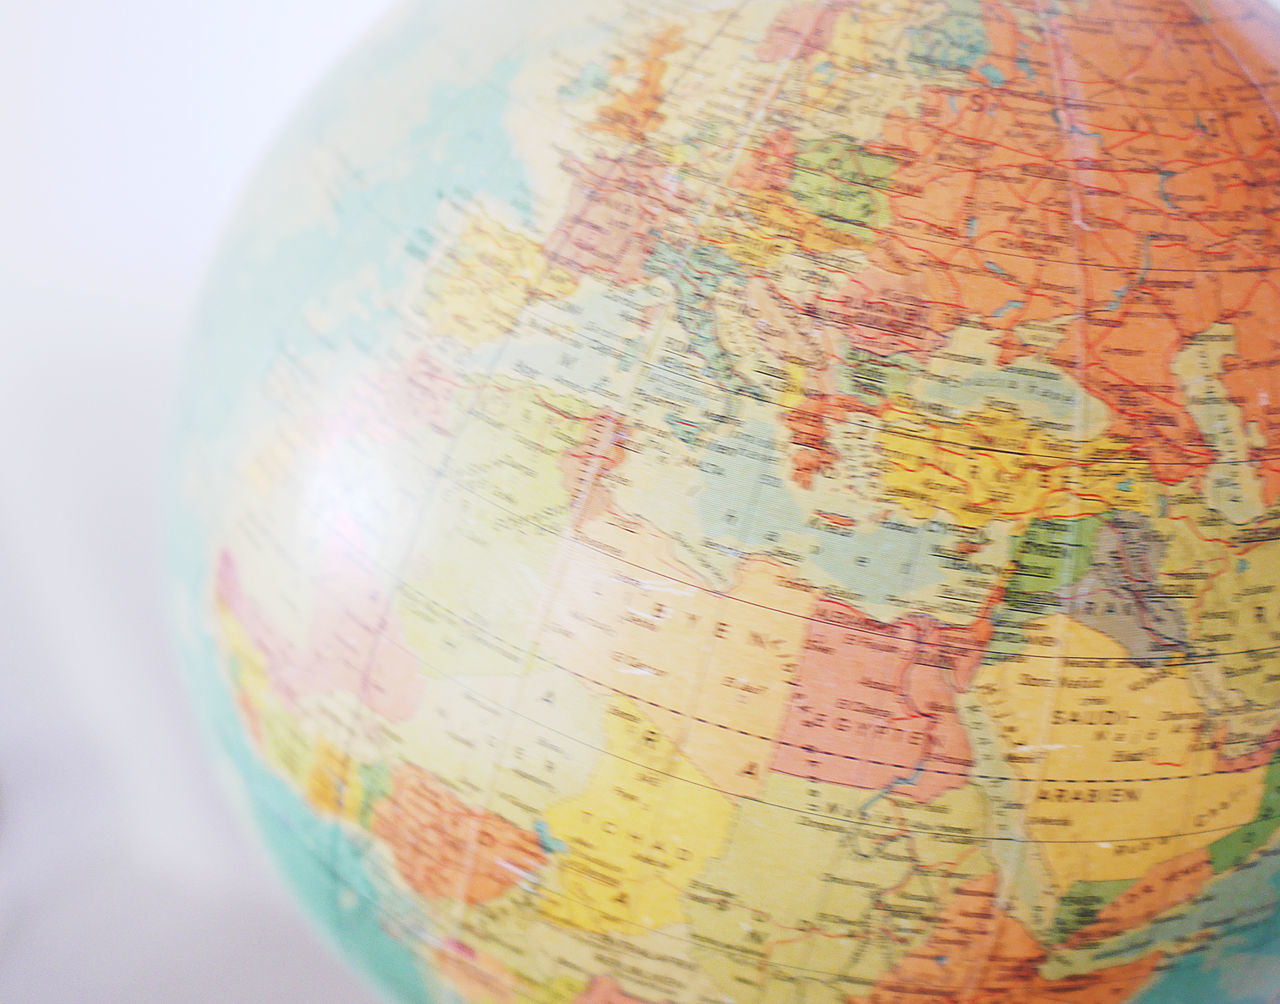 Backgrounds Blurred Blurred Background Blurred Motion Blurred Visions Blurredbackground Close-up Countries Day Earth Full Frame Full Length Geometric Shape Globe Globetrotter Multi Colored No People Planet Planet Earth Tellus World